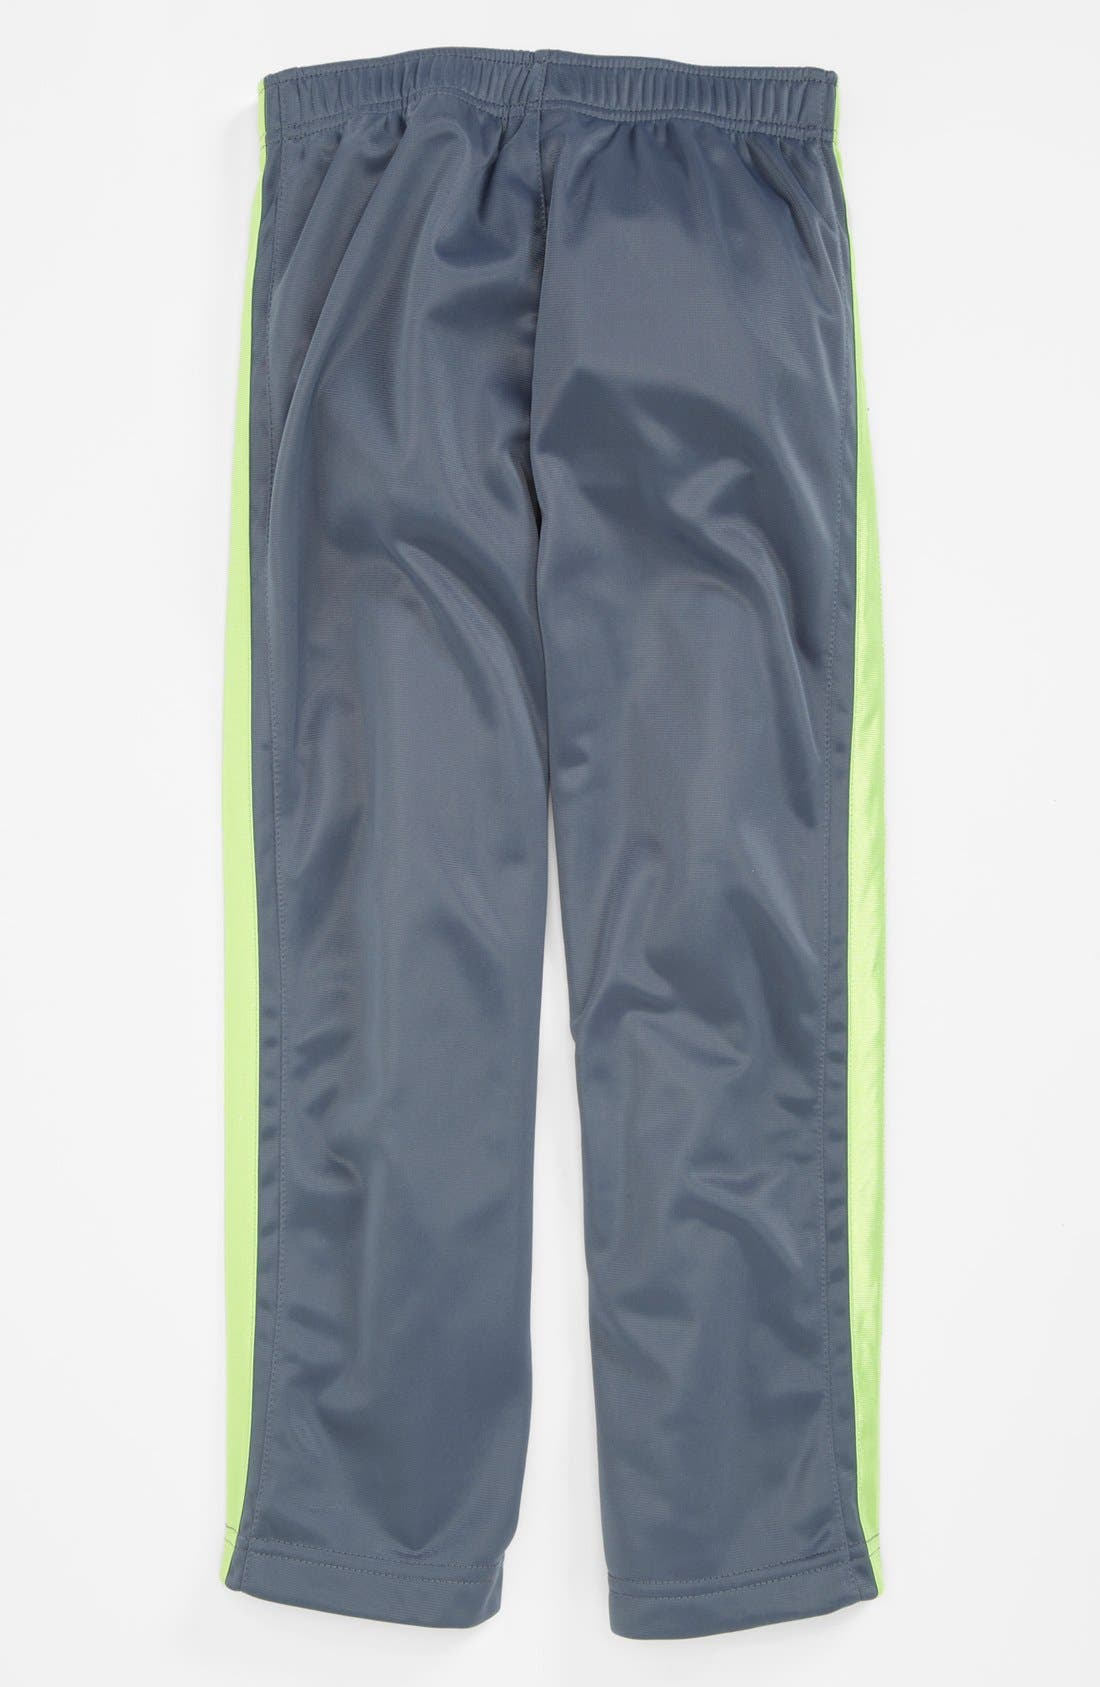 Main Image - Nike 'OT' Pants (Little Boys)